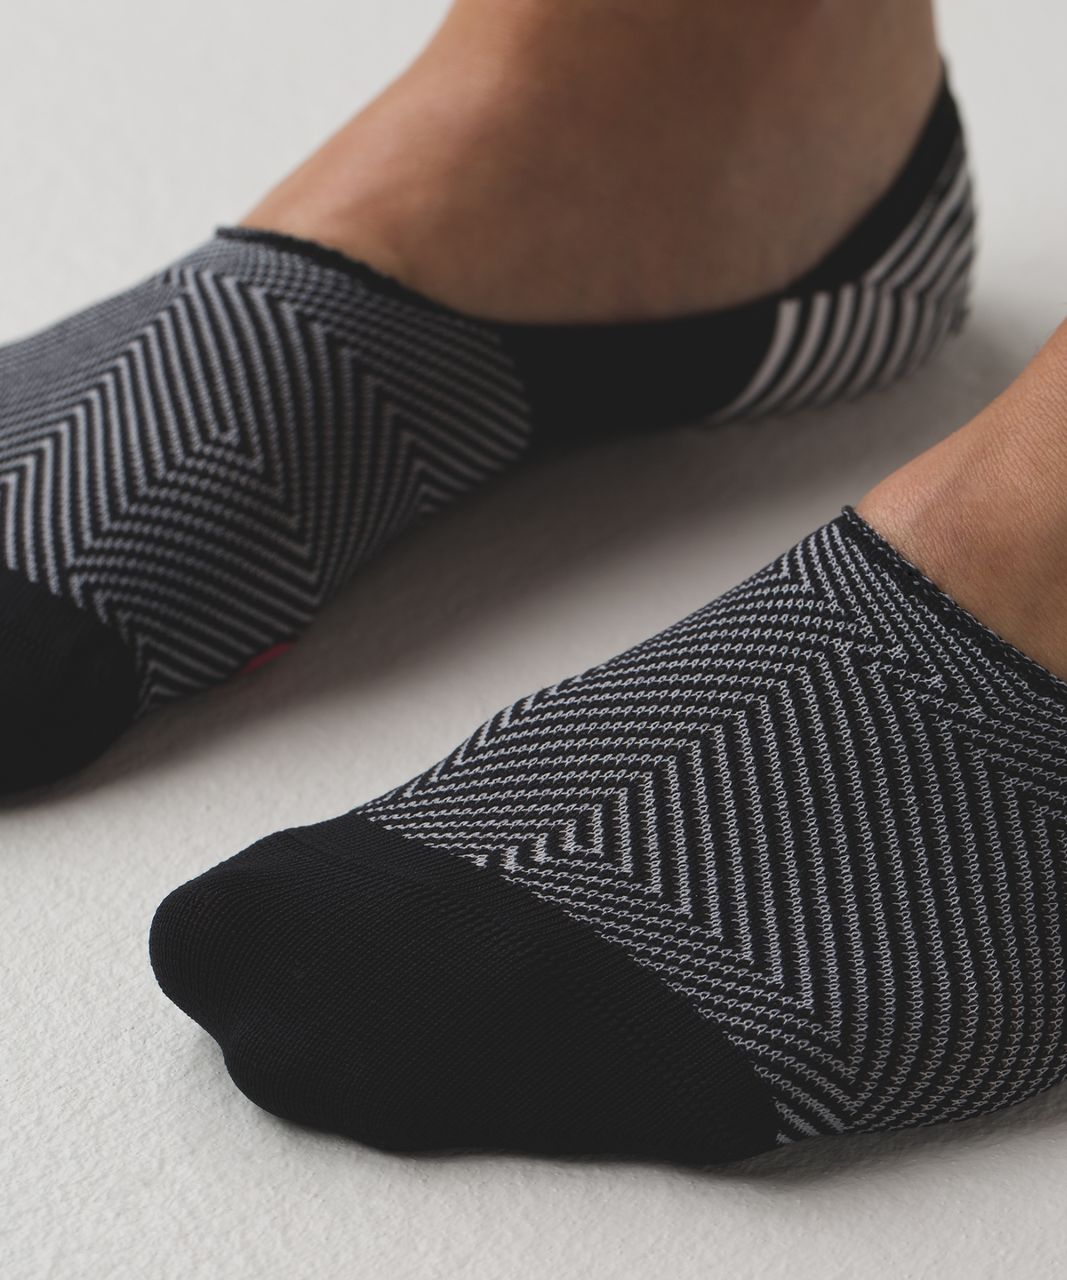 Lululemon Secret Sock - Black / White / Boom Juice